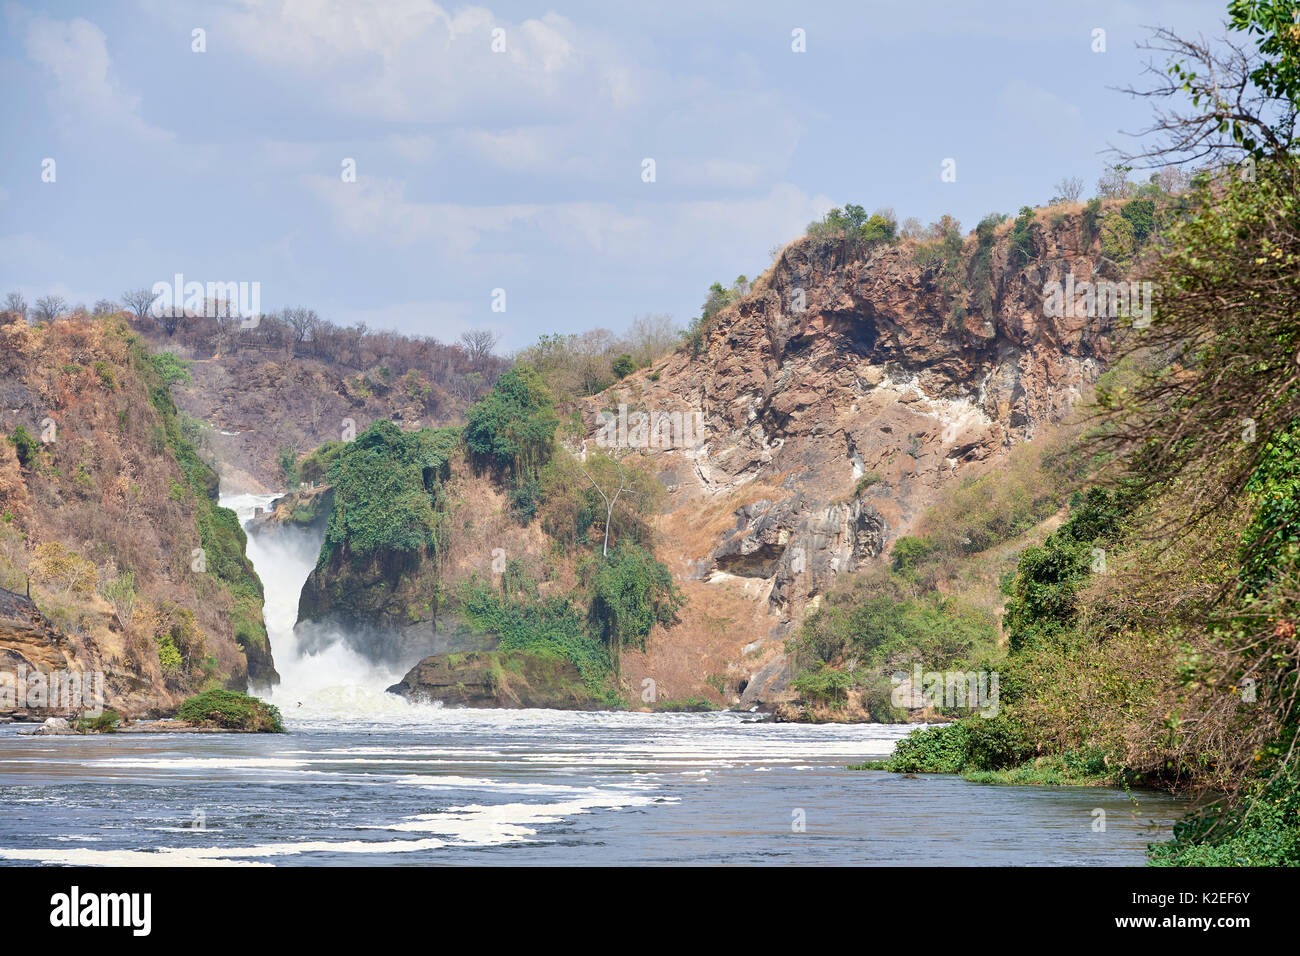 Murchisson Falls National Park and lake Albert, Uganda - Stock Image